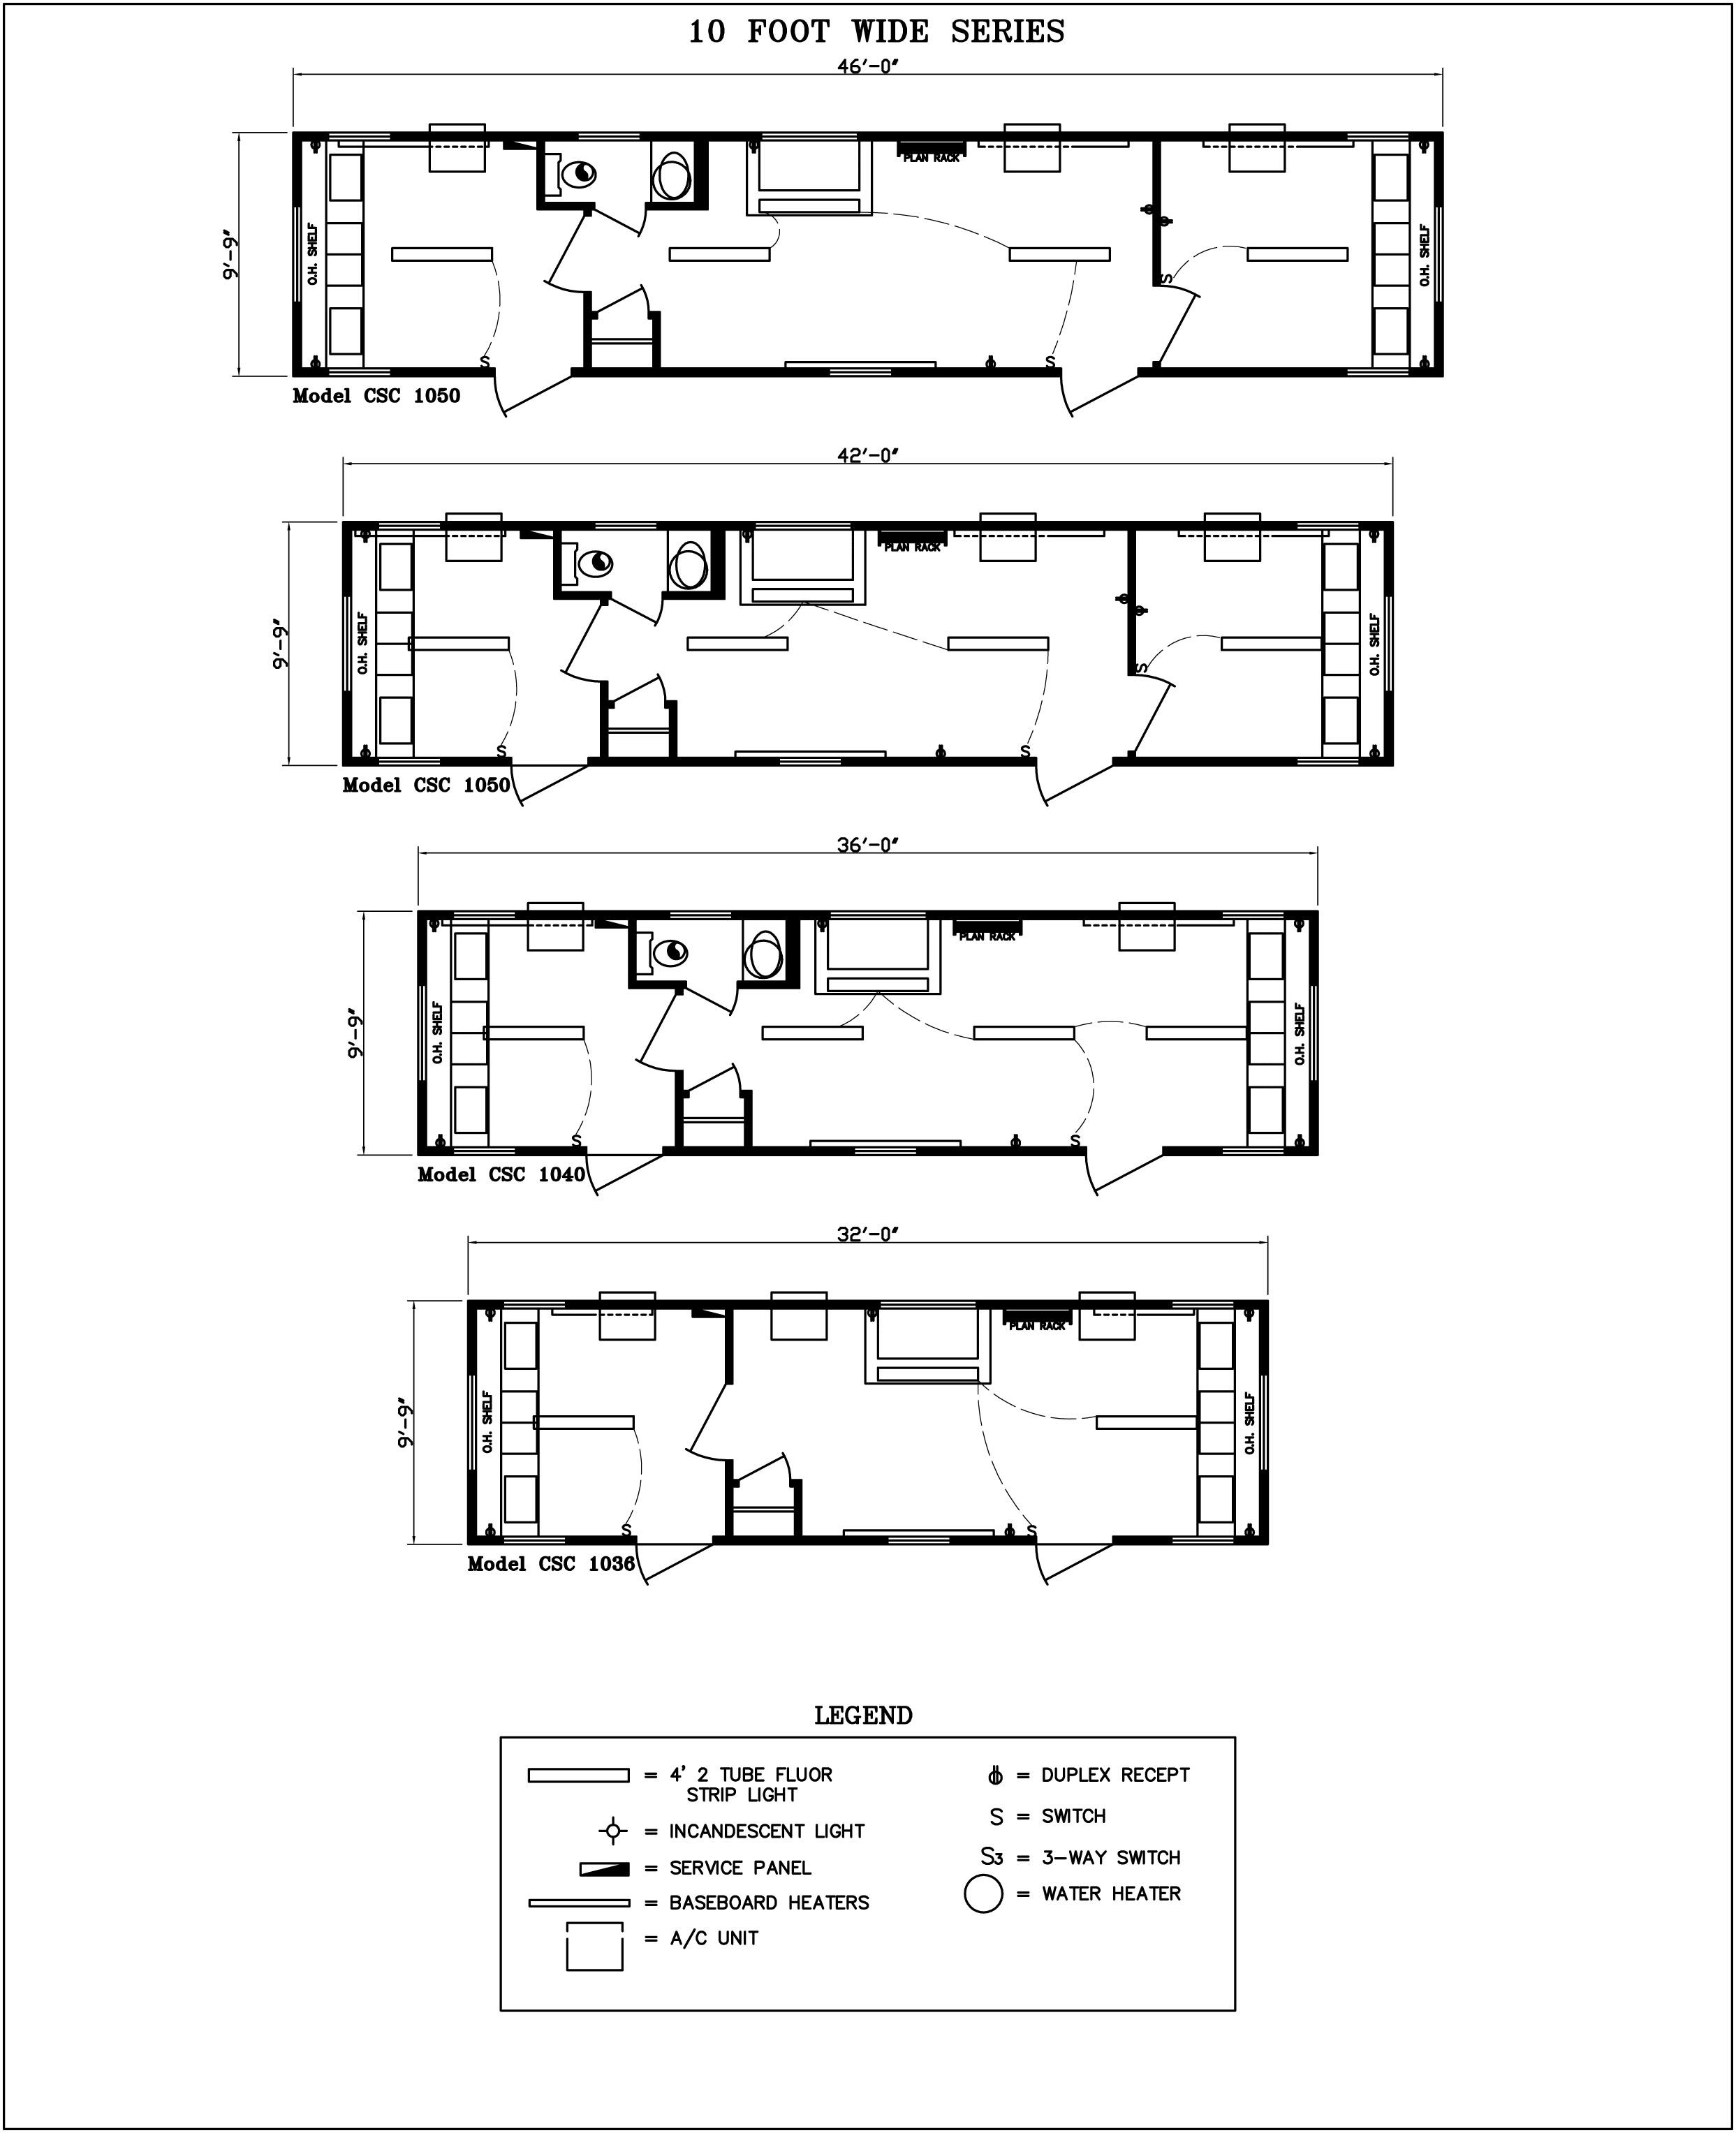 10 foot wide modular office floor plans